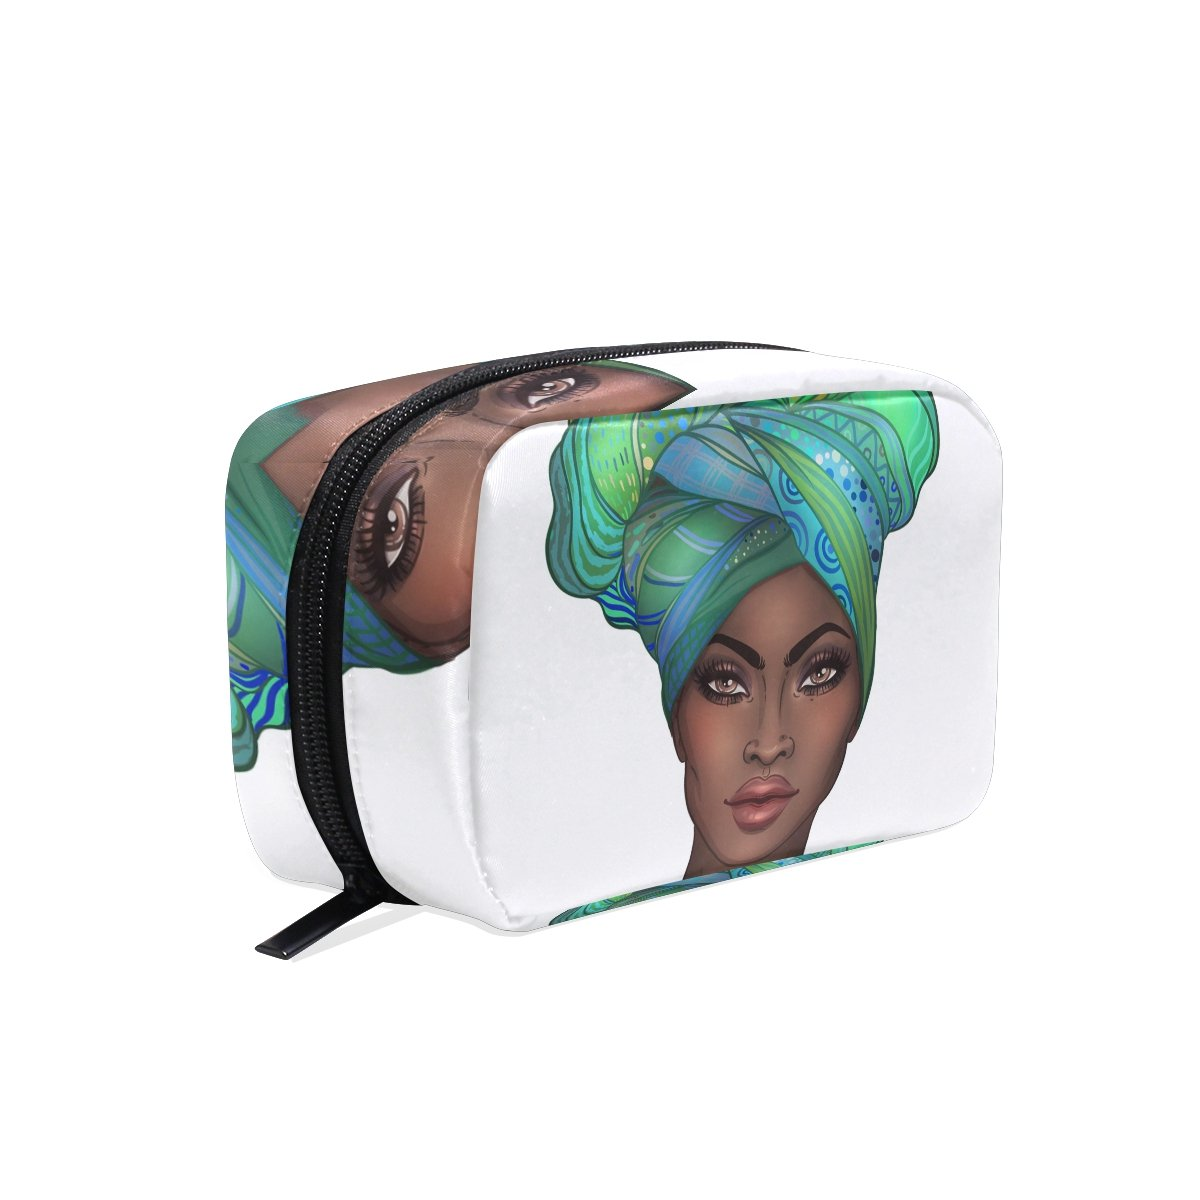 Portable Travel Makeup Bag Cosmetic Bag African American Woman Toiletry Bag Organizer Accessories Case, Tools Case for Women